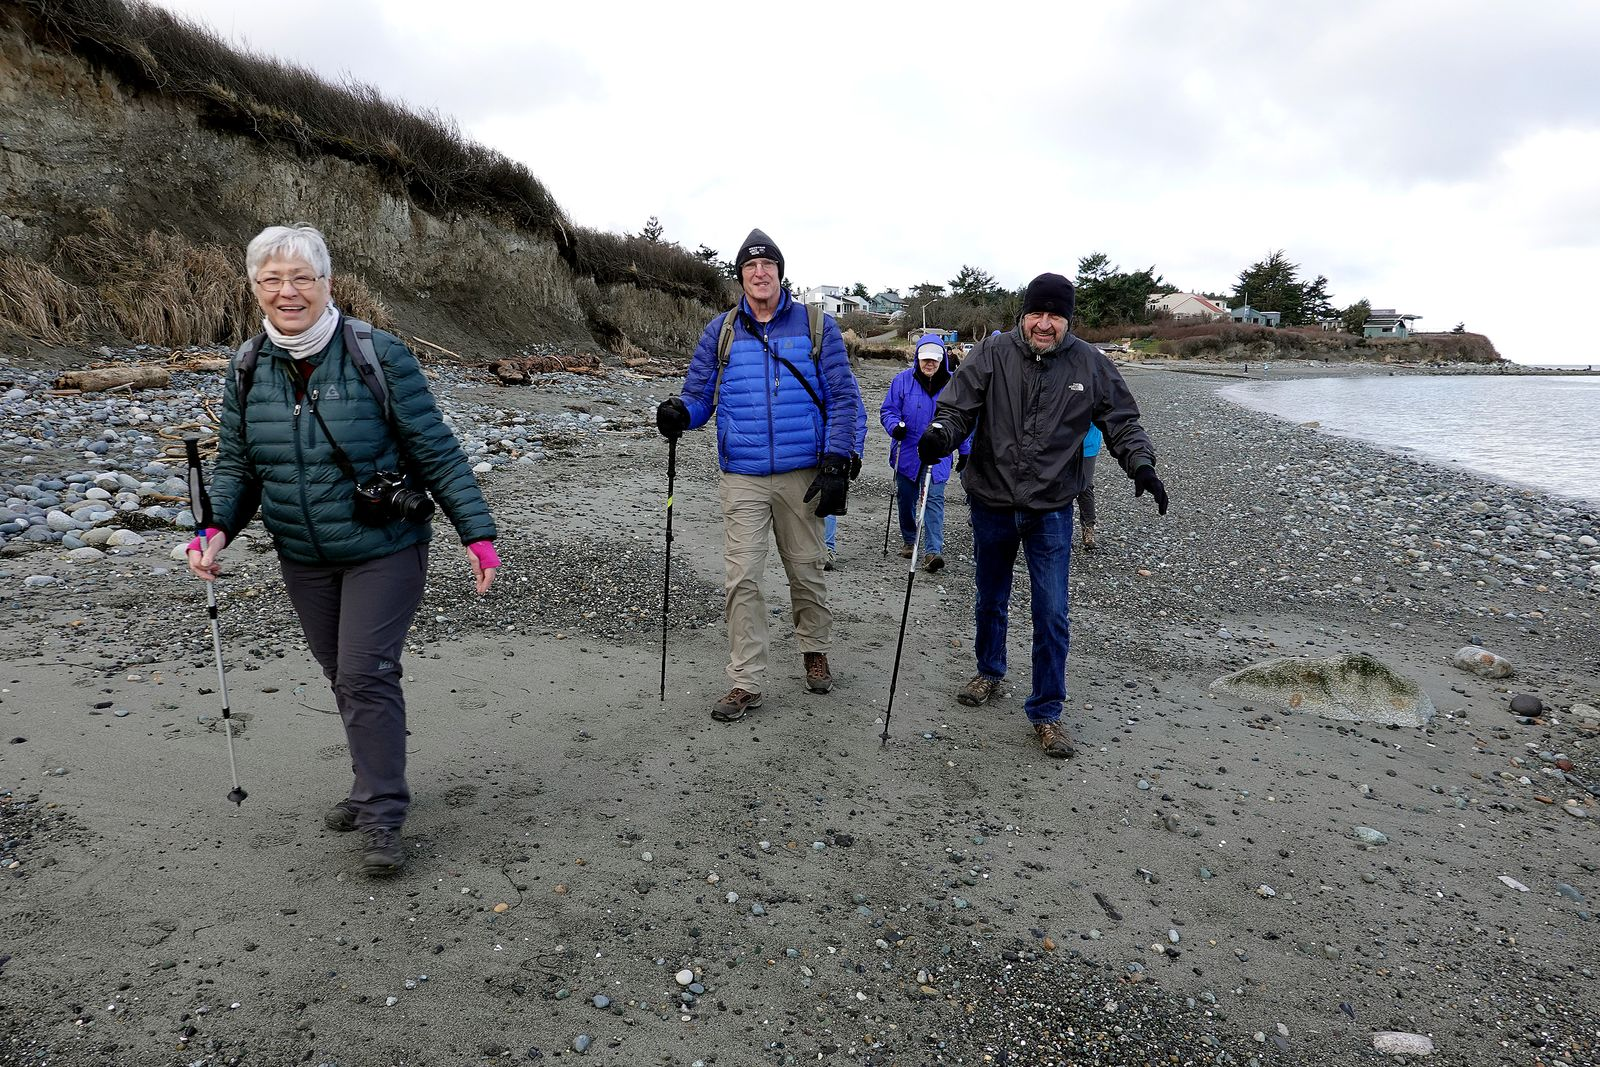 Sam, Andy and Denny appear to enjoy their stroll along the beach